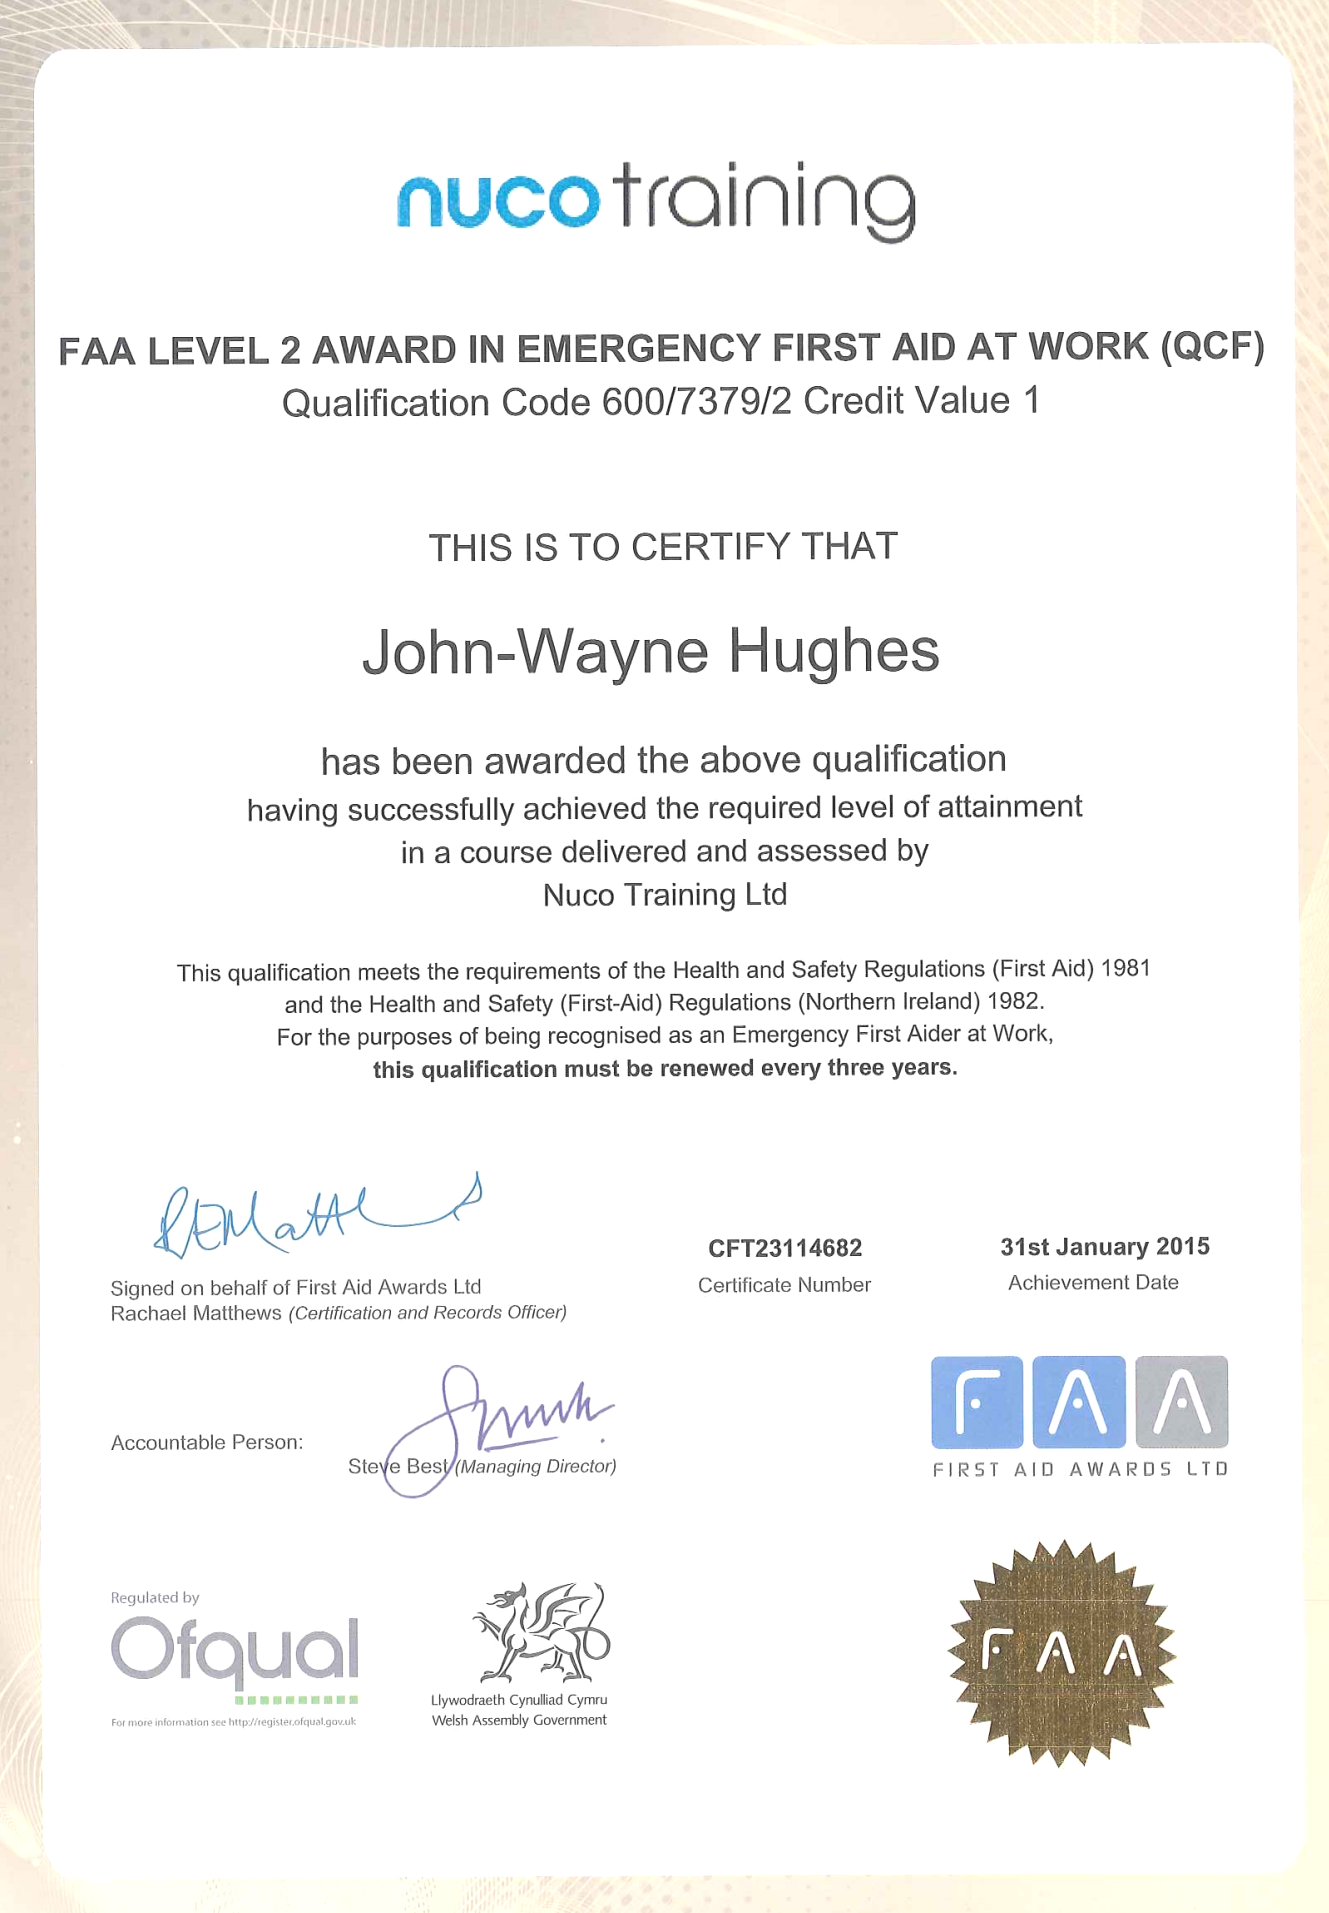 Emergency First Aid At Work FAA Level 2 Award Certification